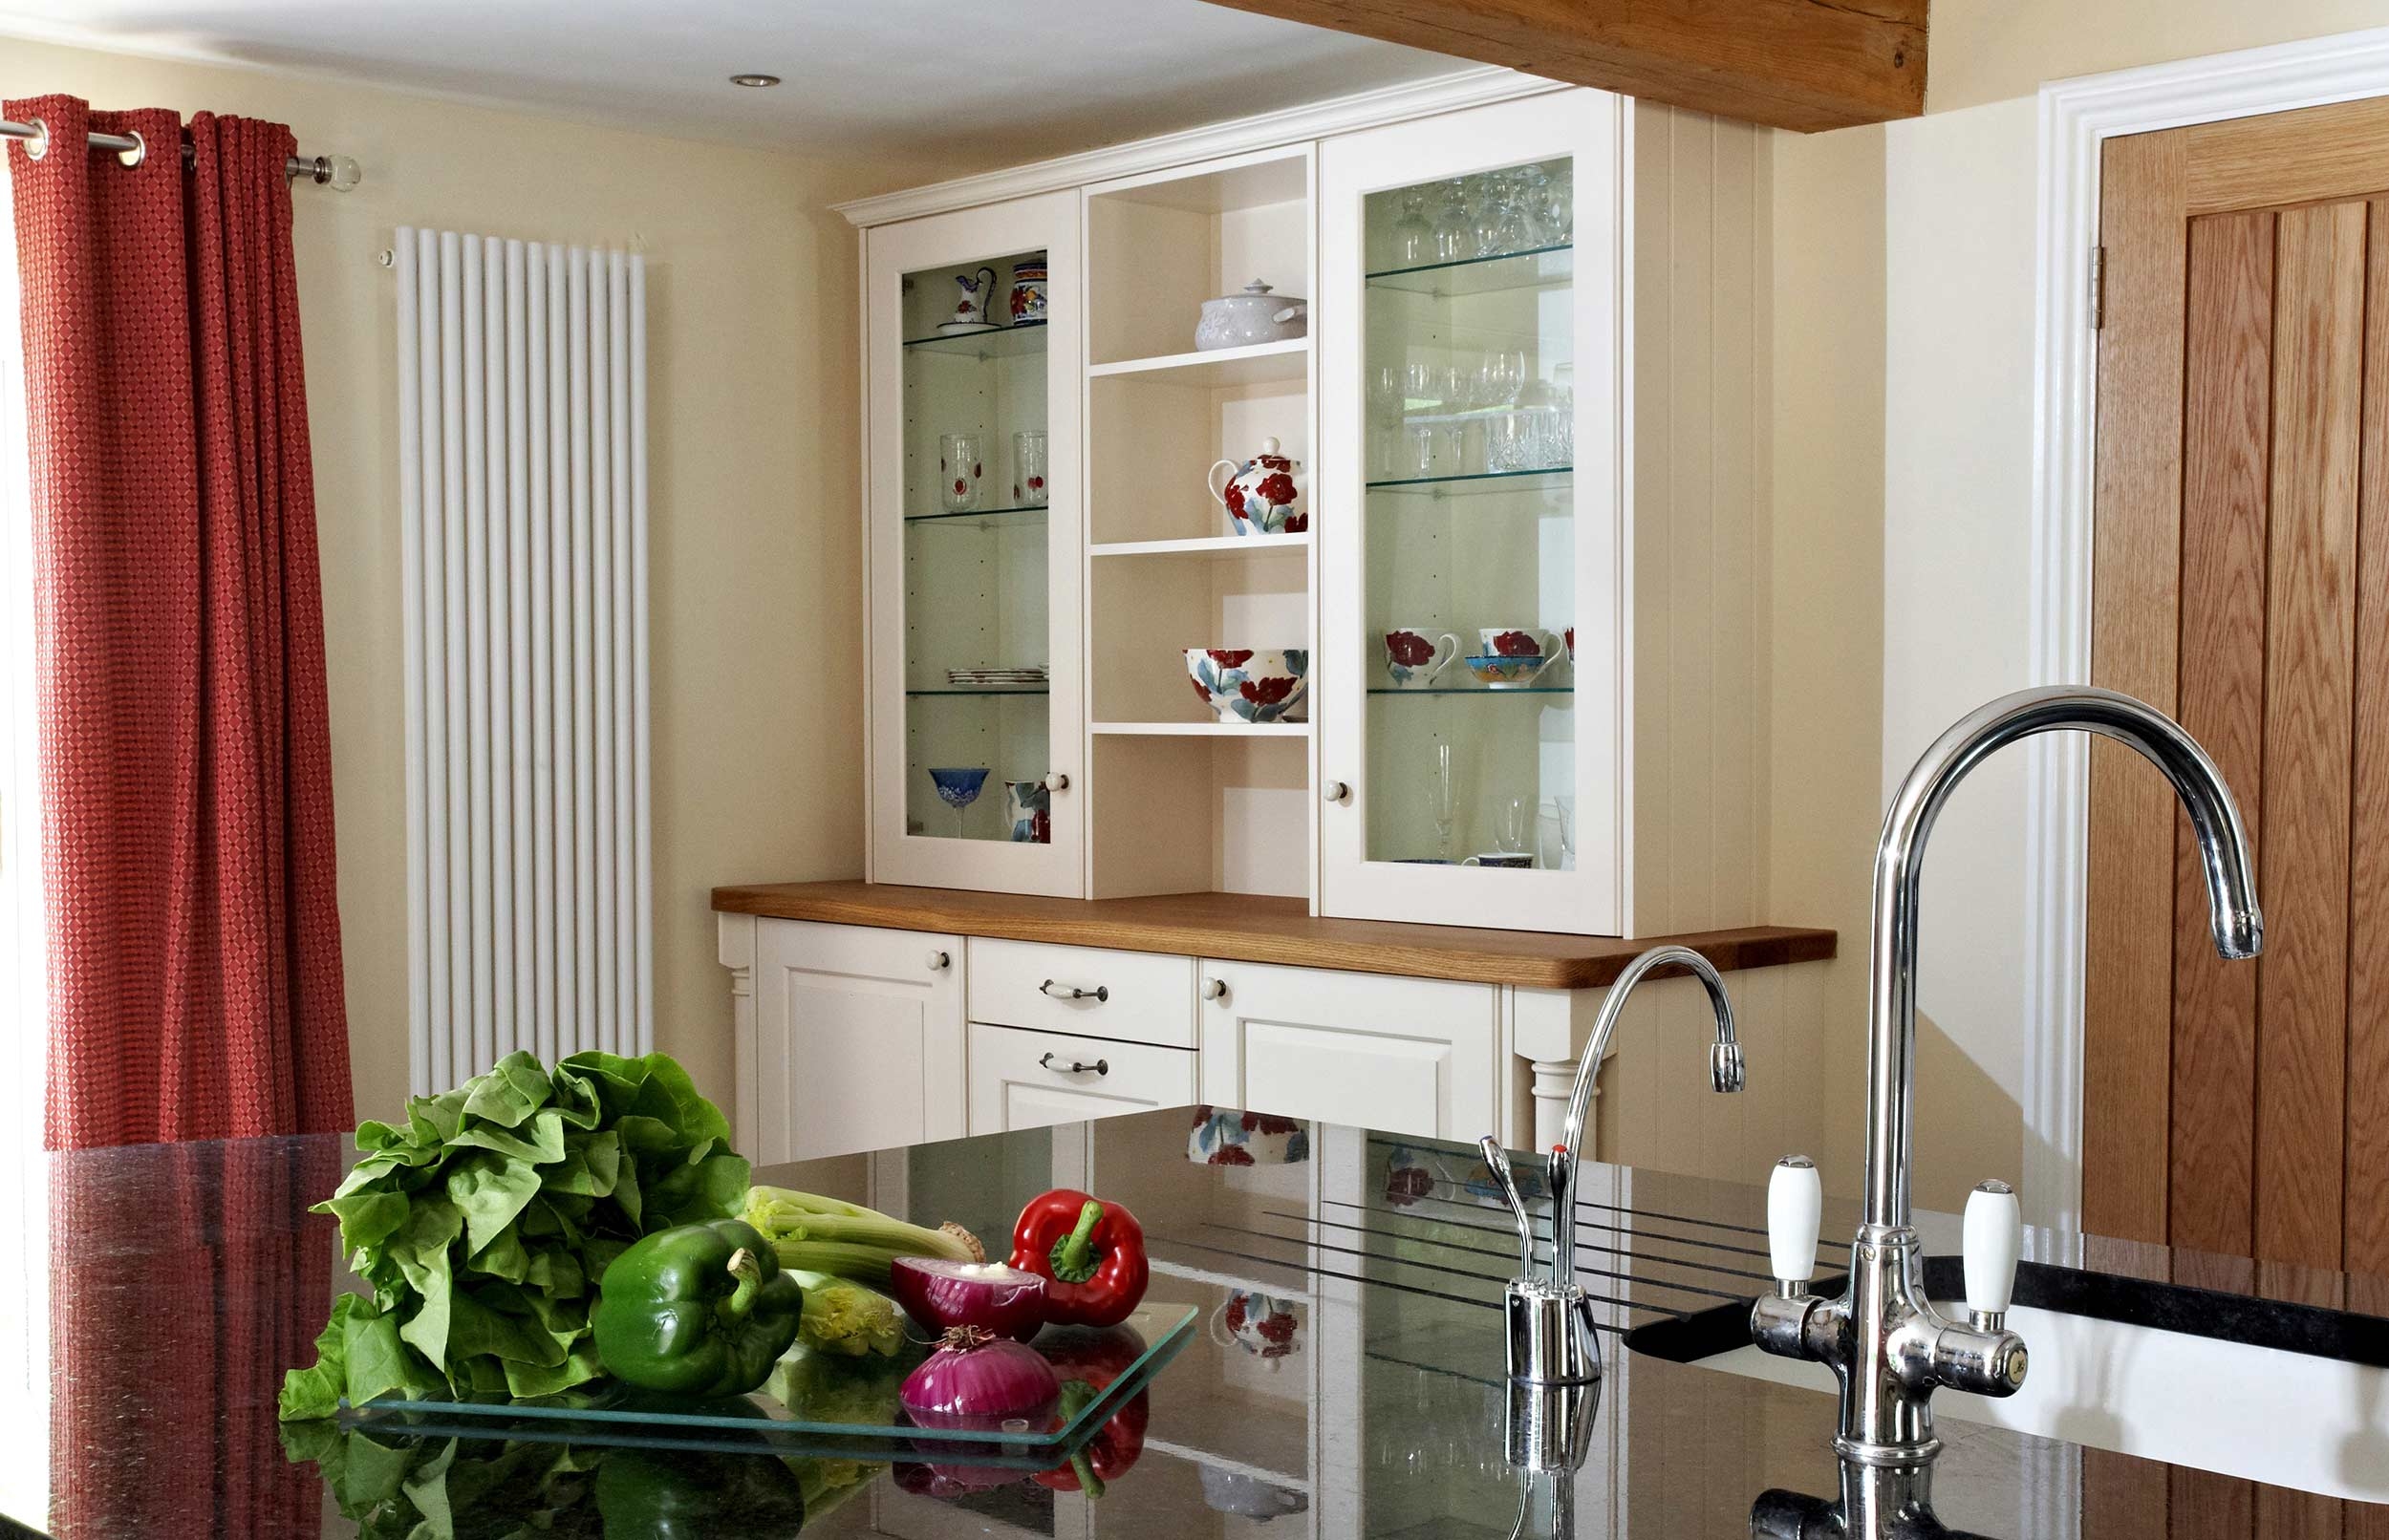 Stylish Bespoke Kitchen - View across Island to Display Cabinet